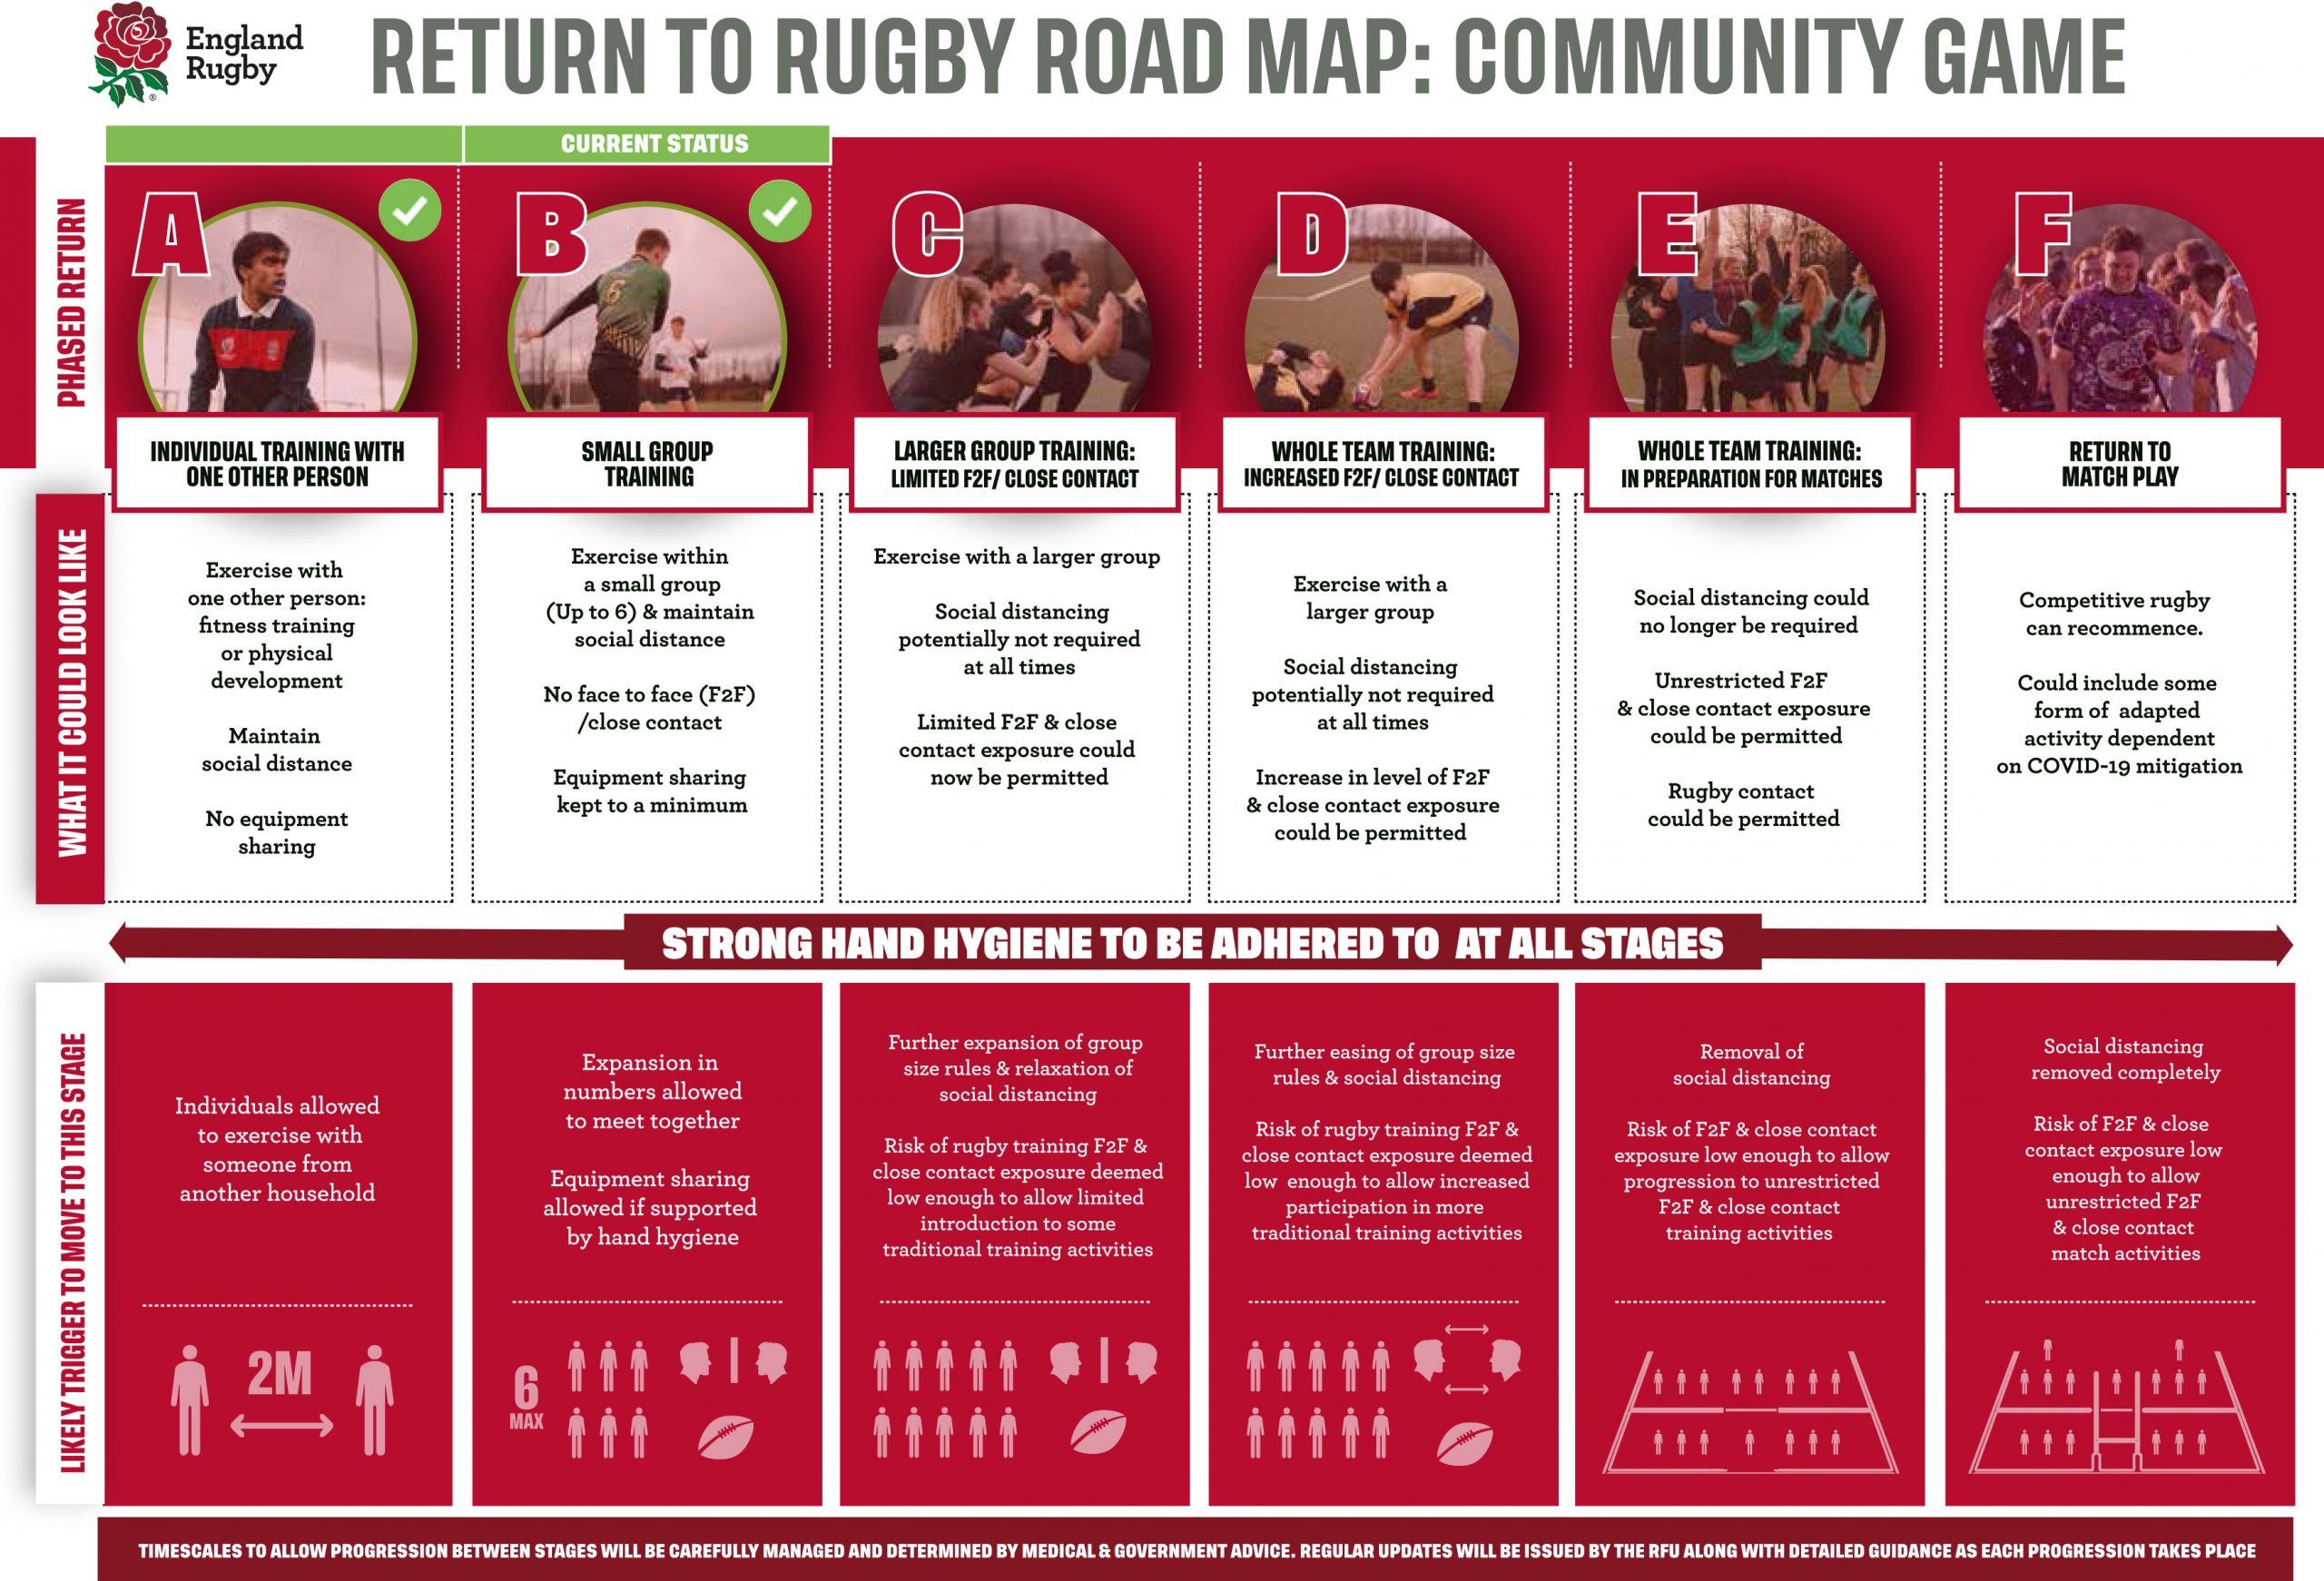 RUGBY_RESTART_ROAD_MAP_FINAL_2020_Part1